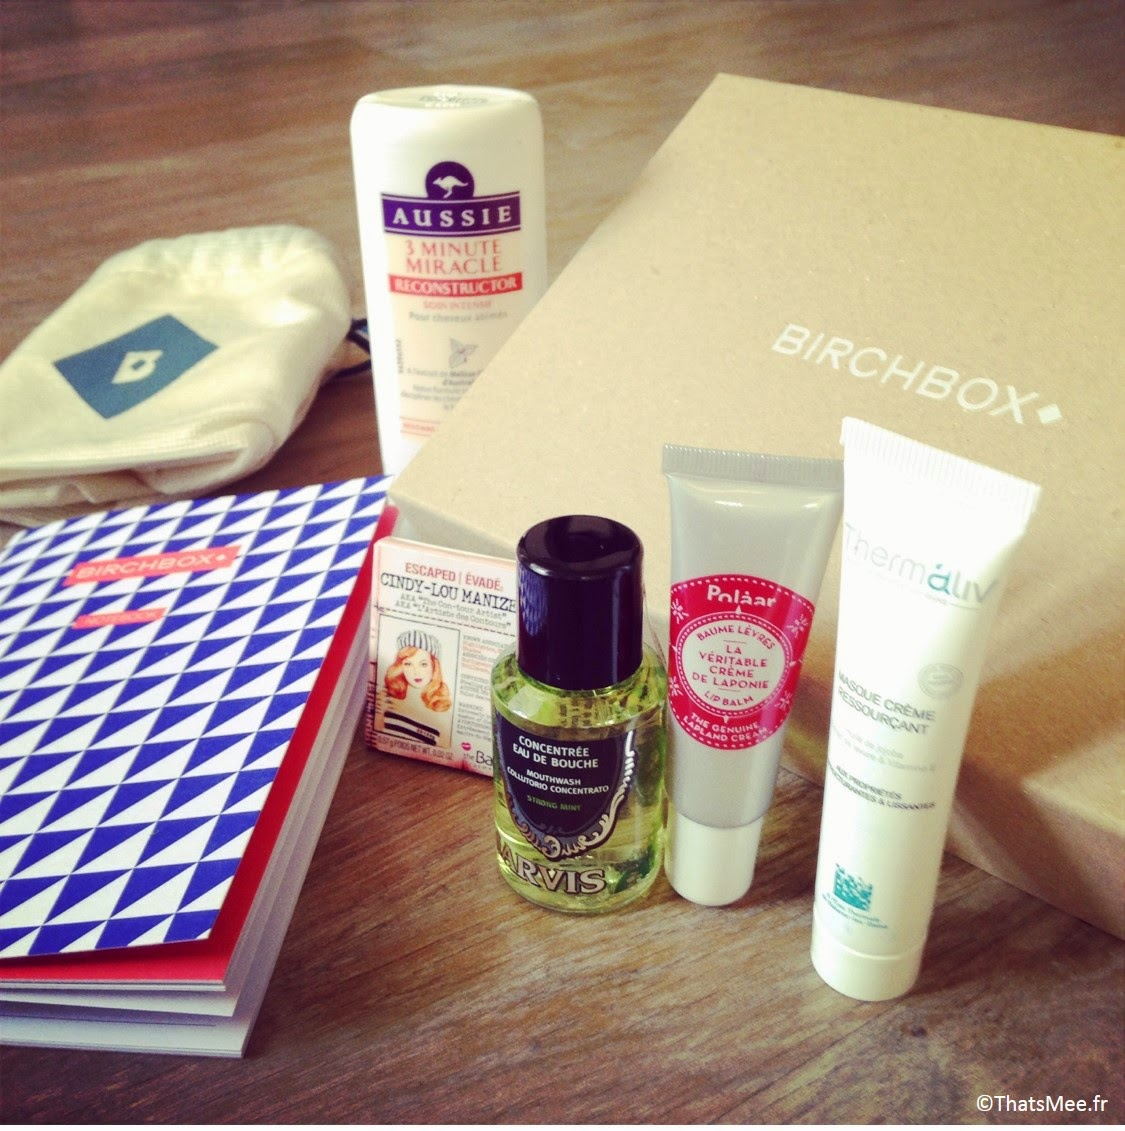 birchbox beauté aussie Polaar Thermaliv Marvis Mirenesse beauty box